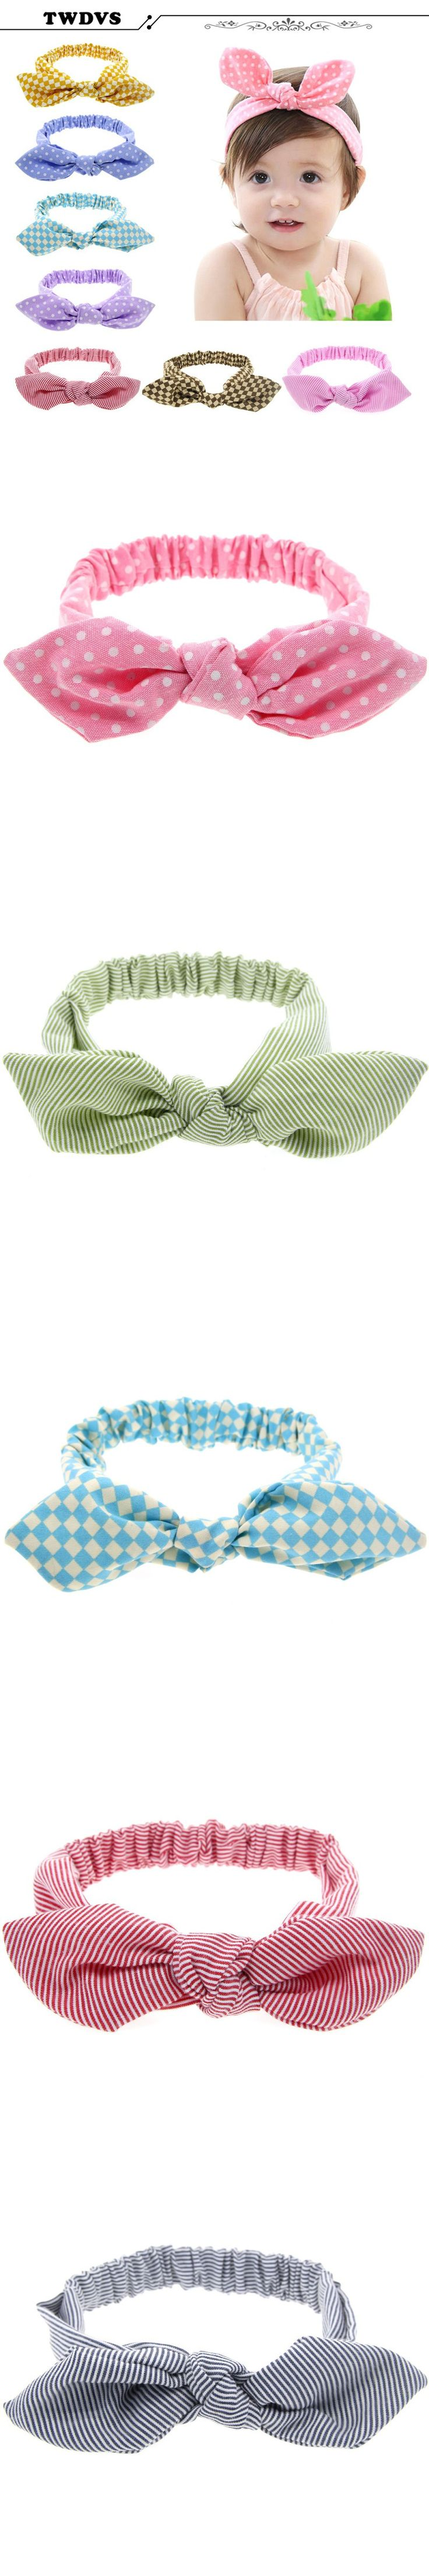 TWDVS Headwear Rabbit Ear Baby Headband Style Hair Bow Elastic Knot Top Hair Bands Hair Bands Hair Accessories KT004 $1.65